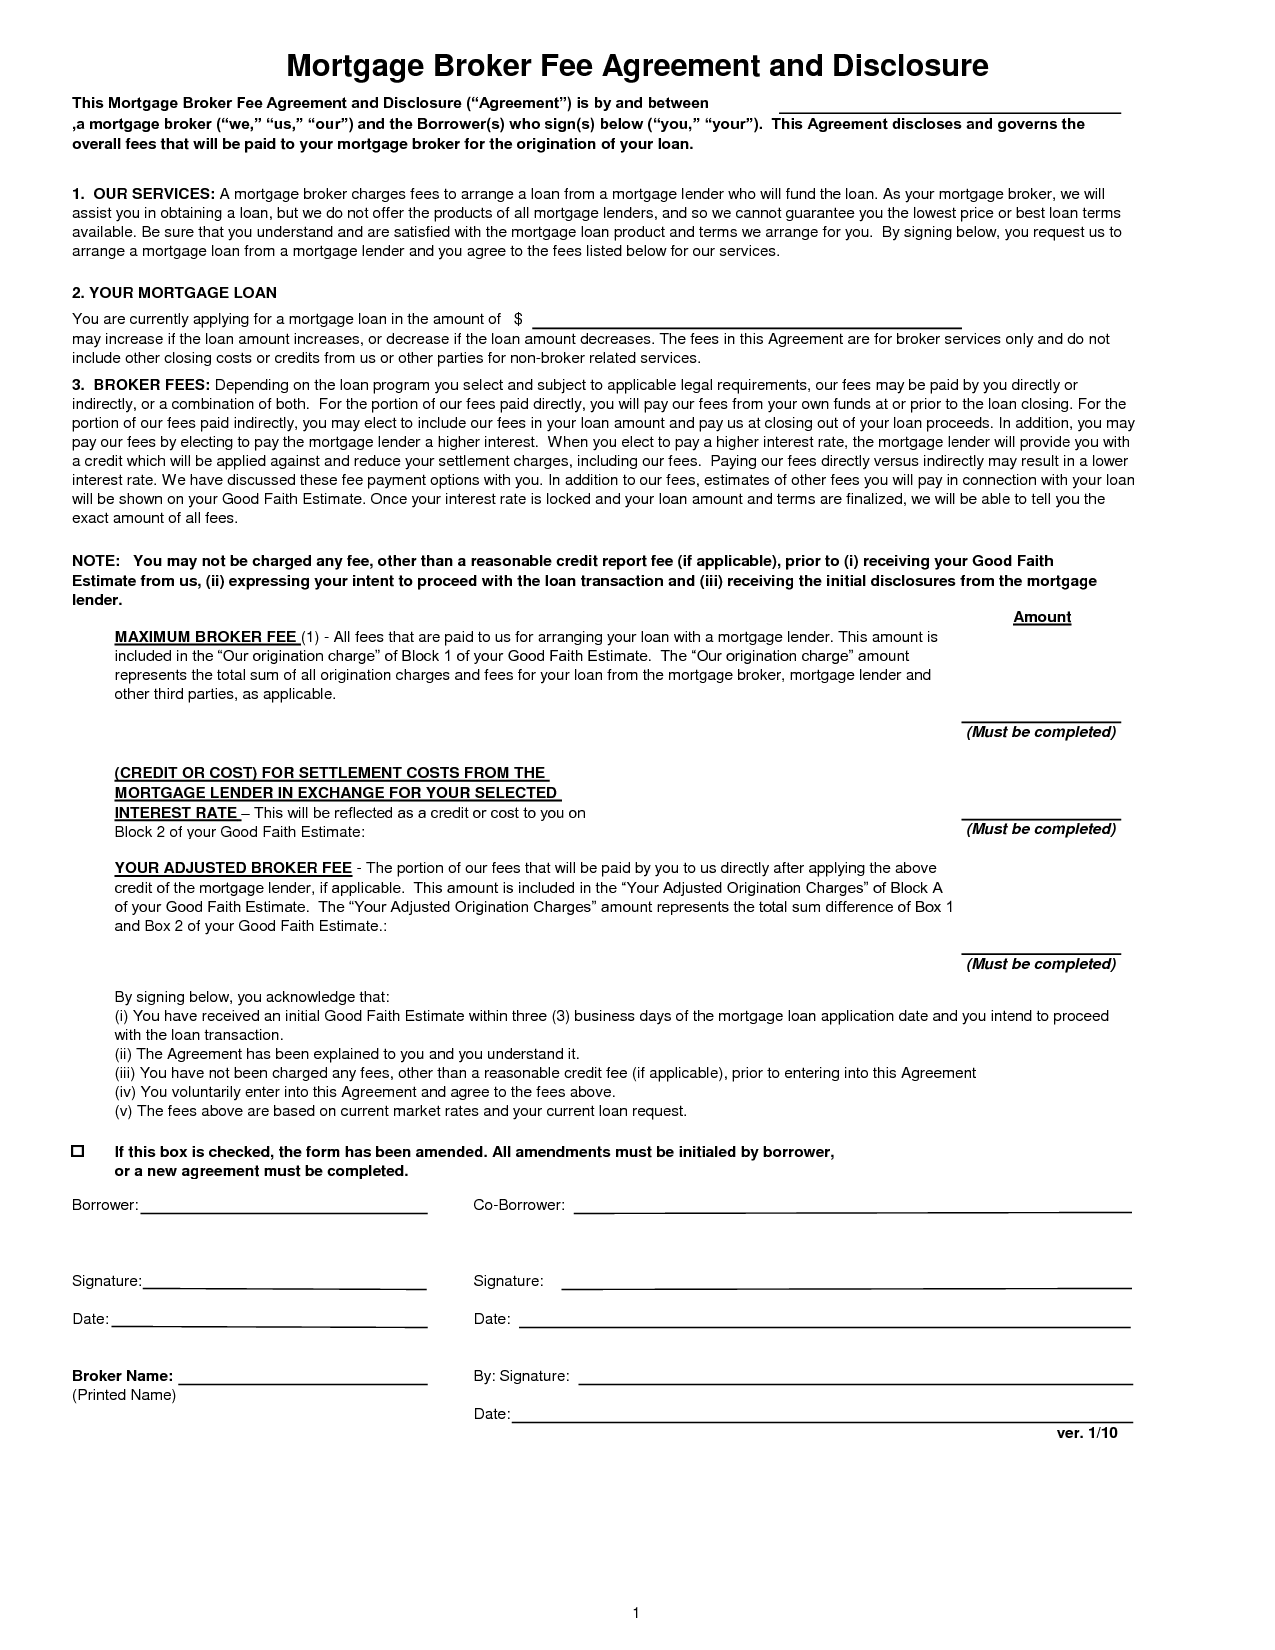 Mortgage Loan Agreement by dlp13834 private mortgage contract – Sample Loan Documents